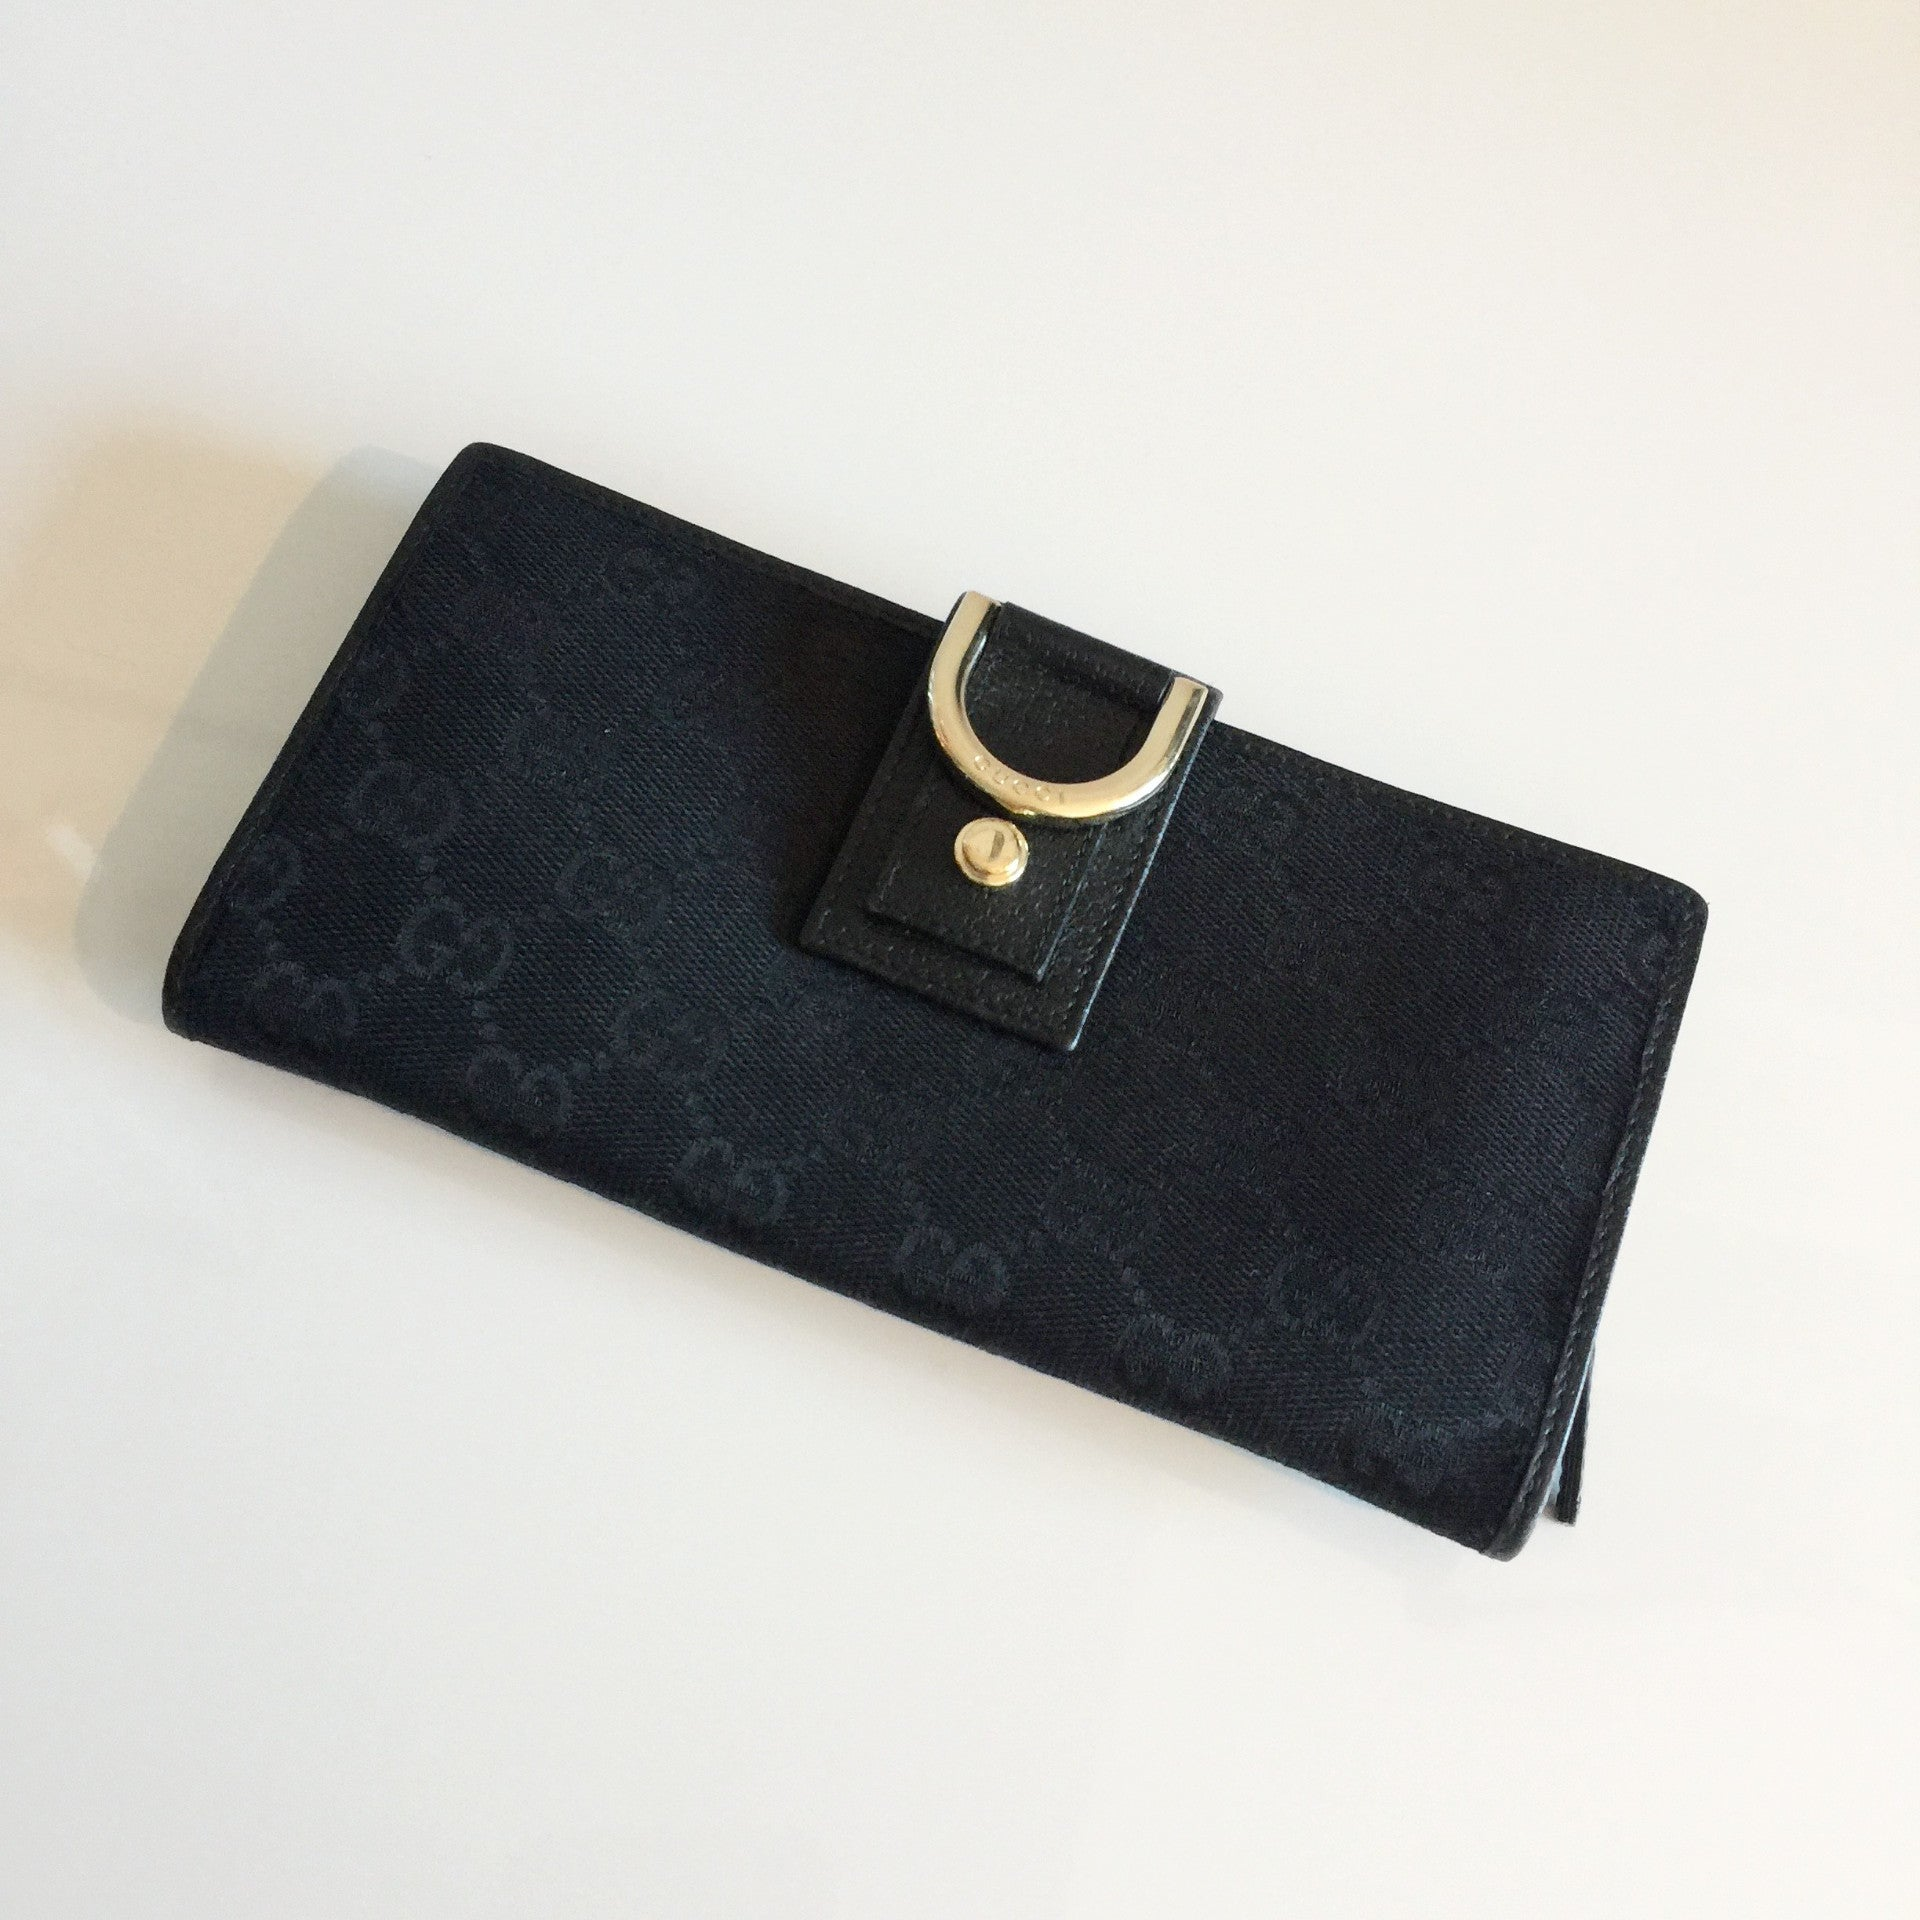 Authentic GUCCI Black Abbey Wallet